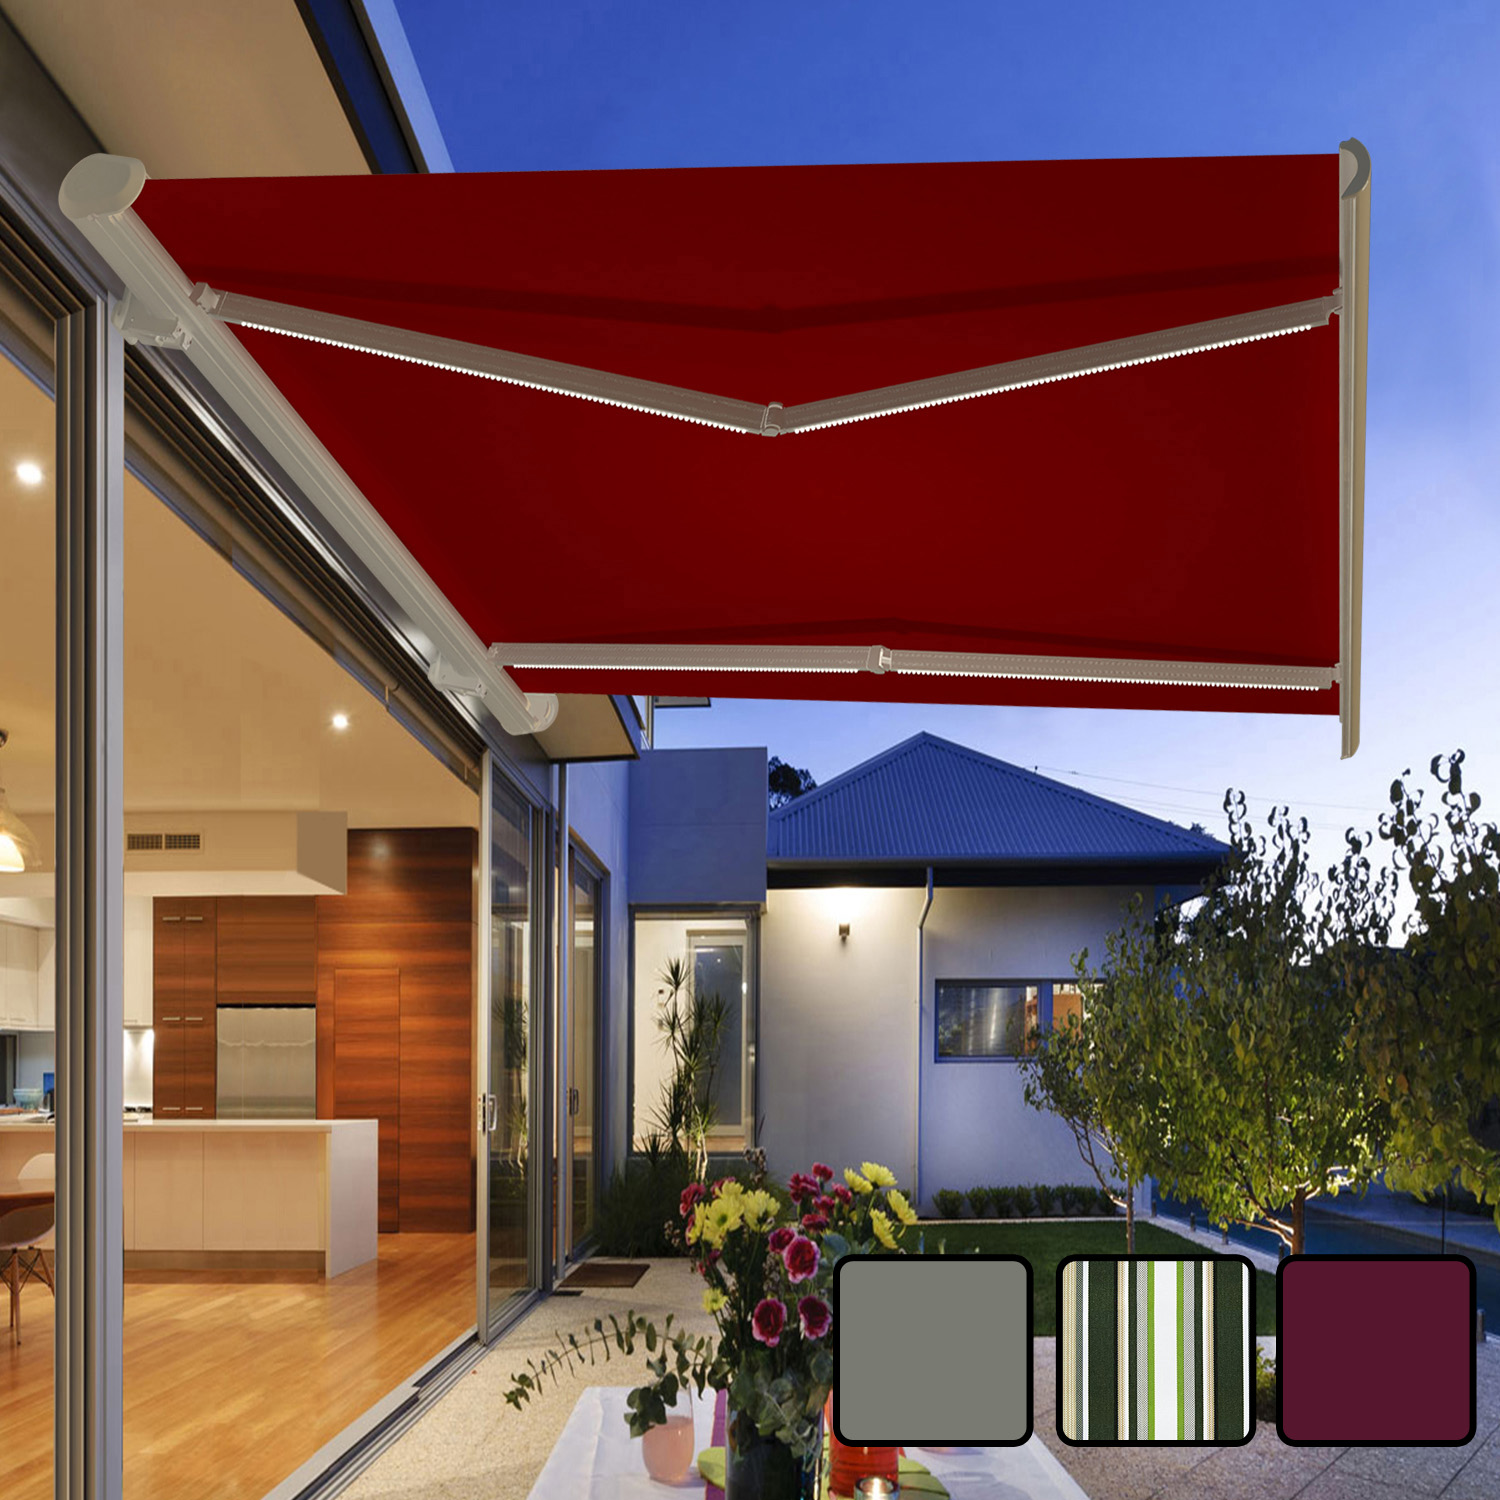 Garden Awning Retractable Canopy Electric Patio Shelter ...